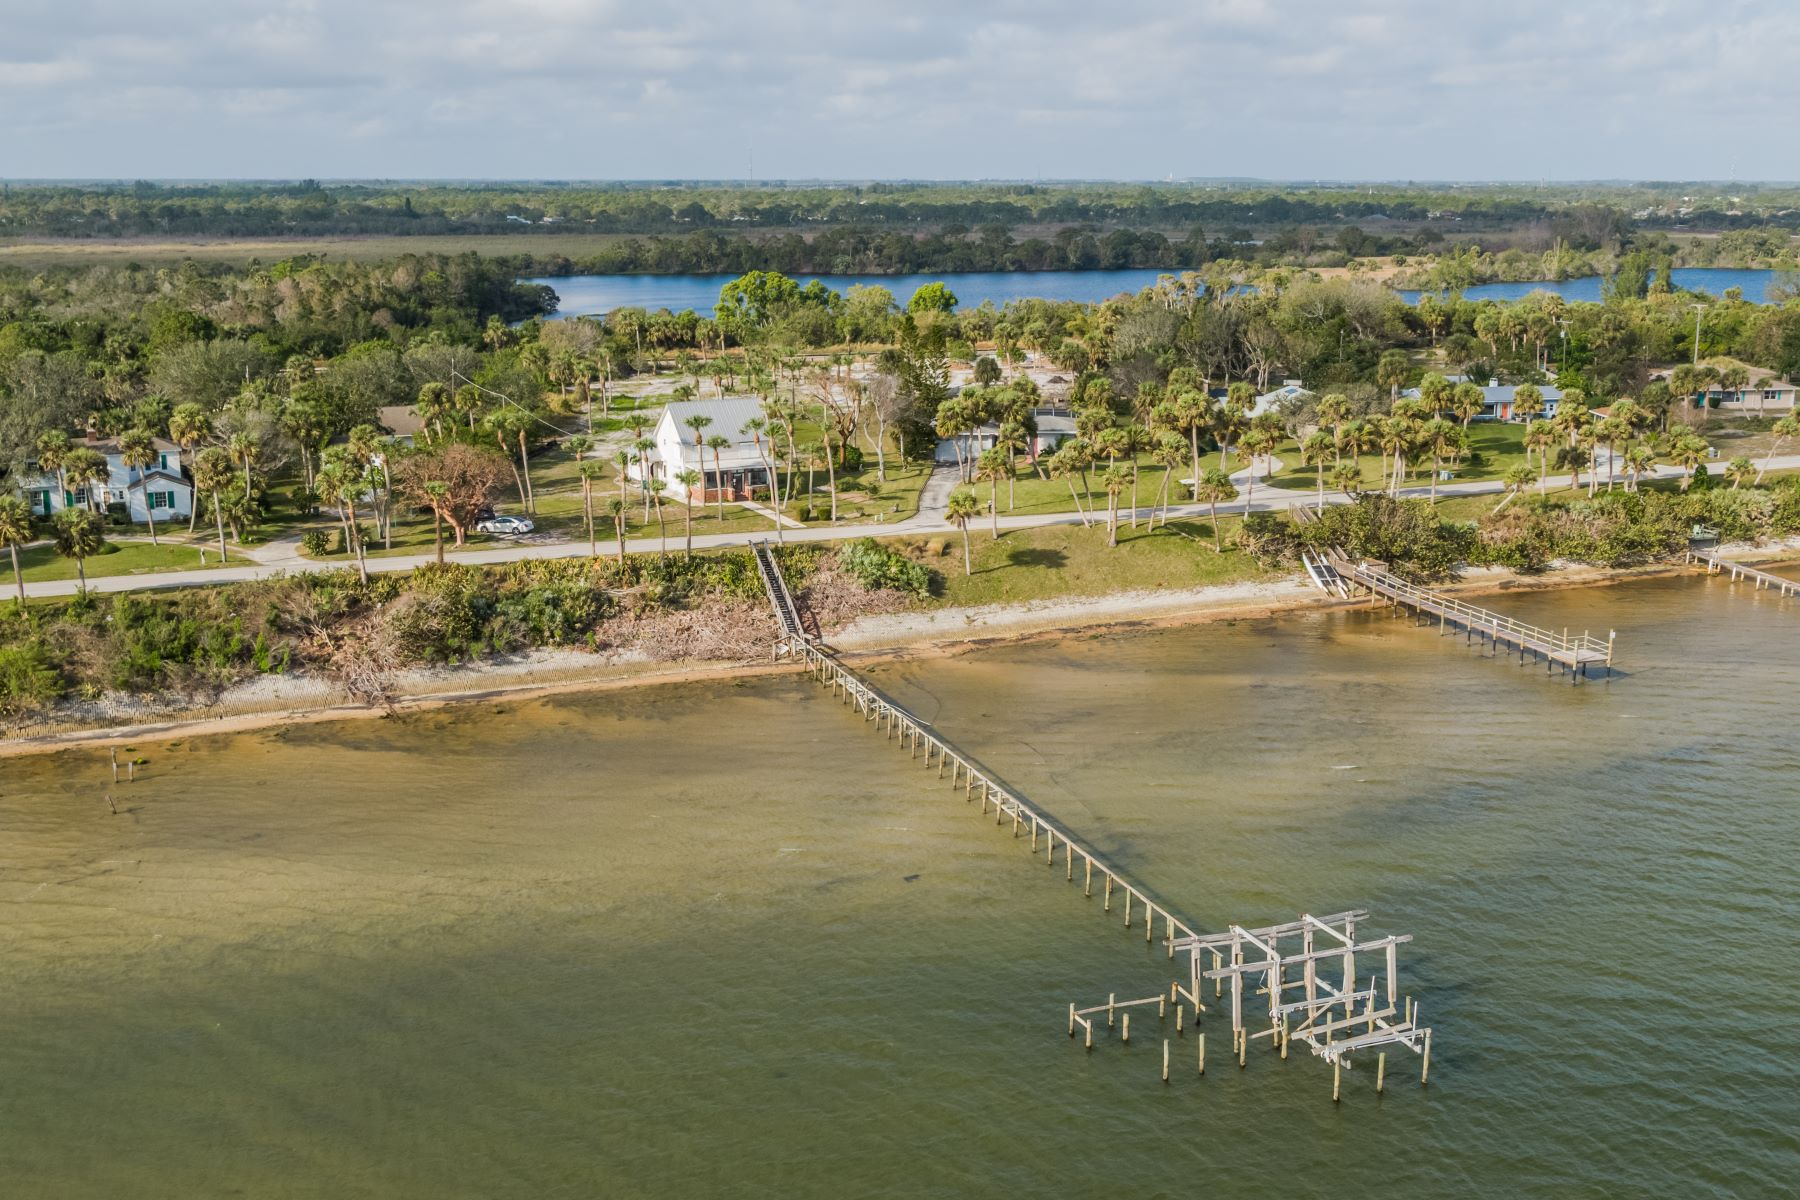 Single Family Home for Sale at 5300 S Indian River Drive 5300 S Indian River Drive Fort Pierce, Florida 34982 United States